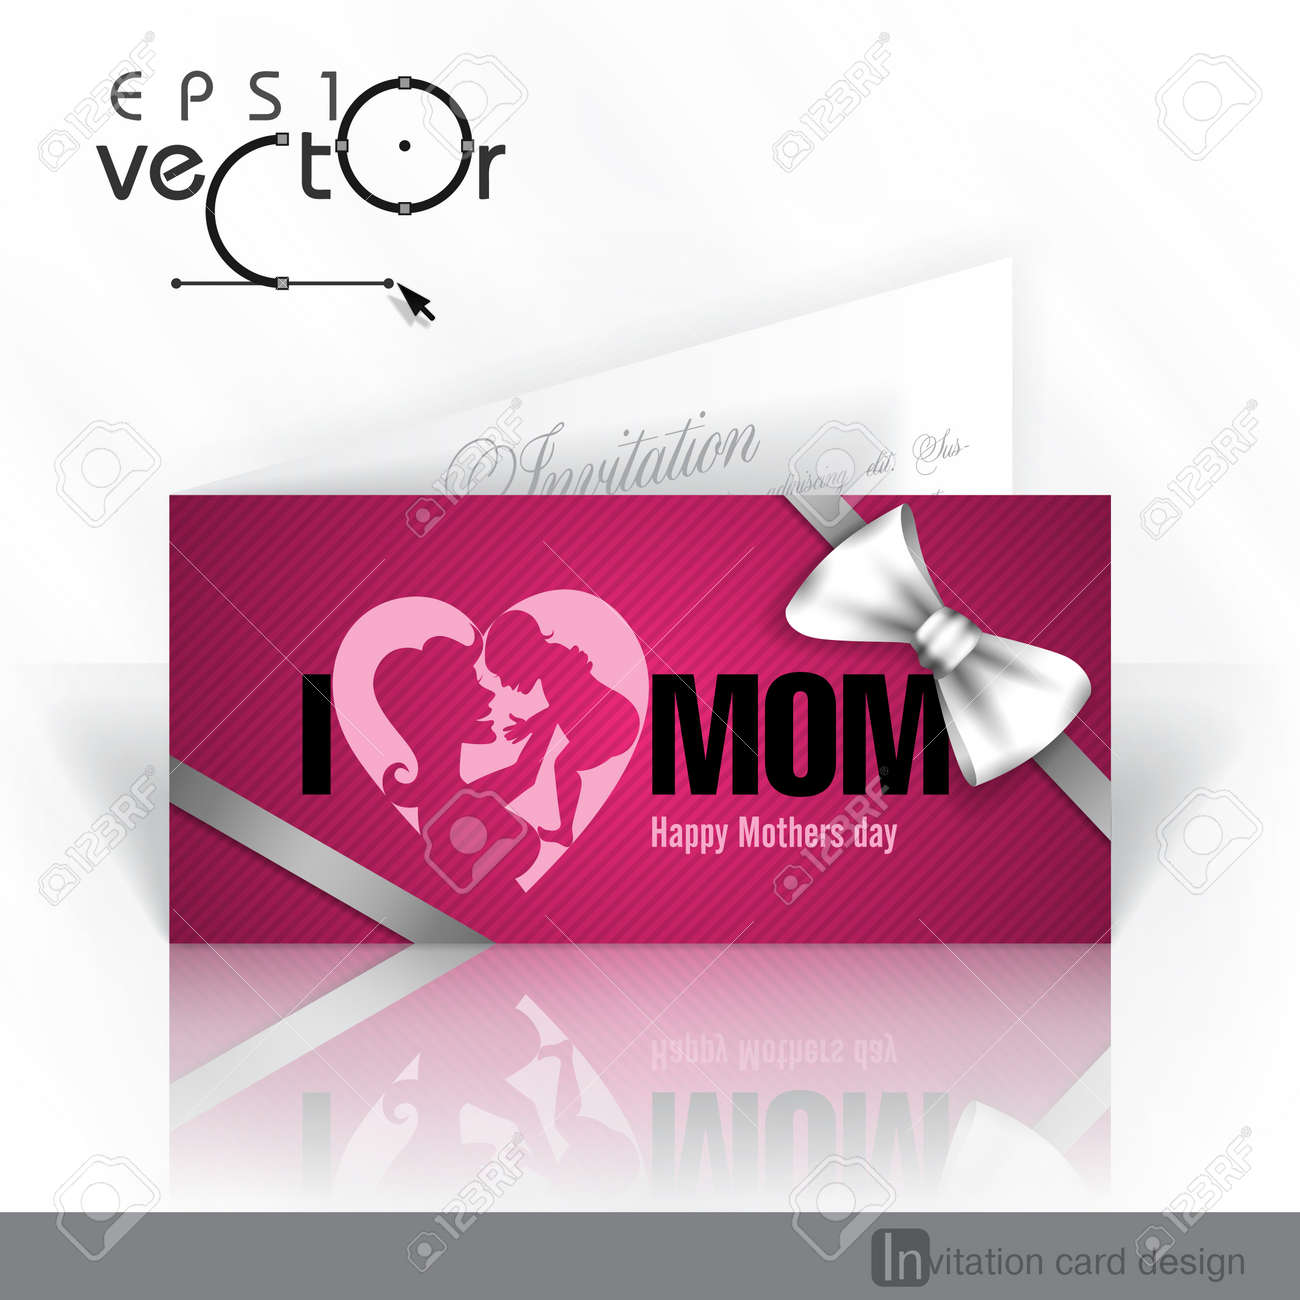 Invitation Card Design Template Happy Mothers Day Royalty Free – Mothers Day Invitation Cards